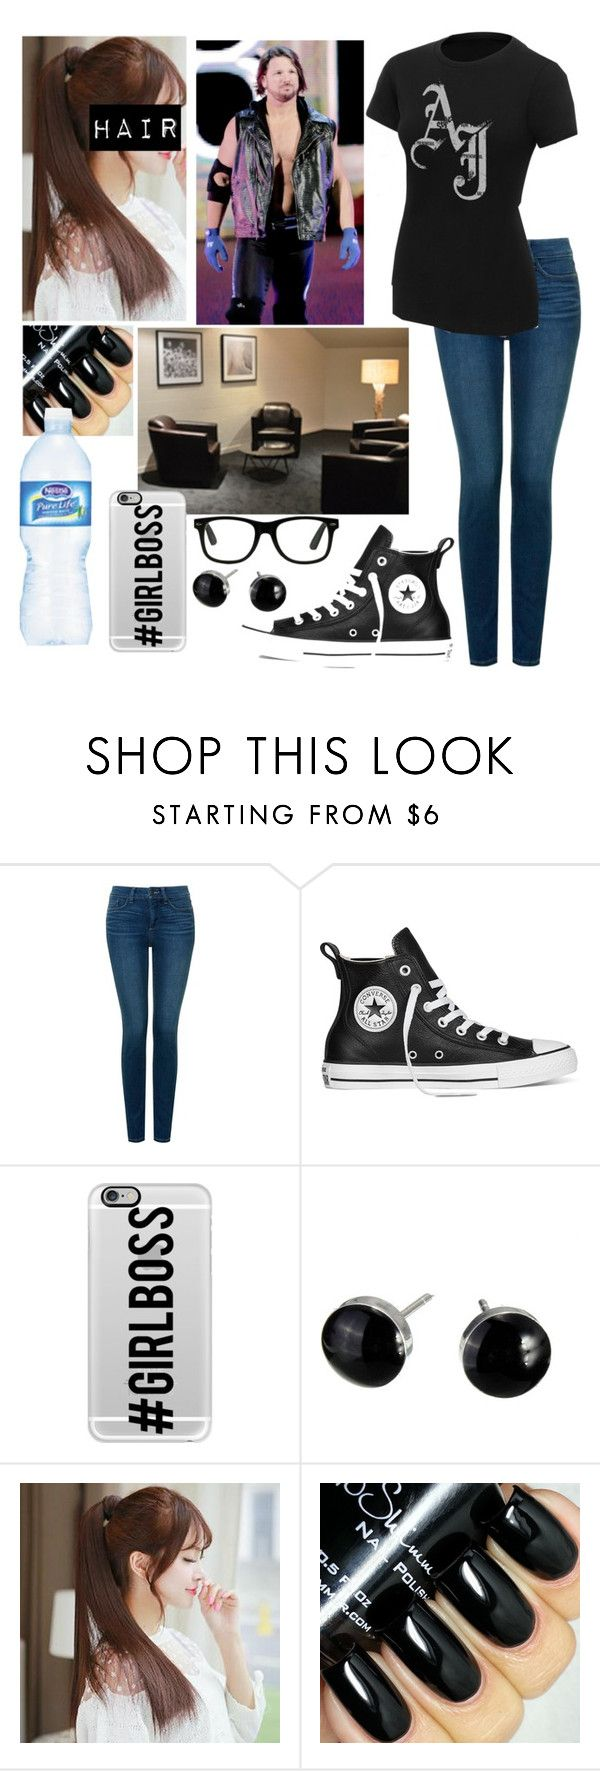 """""""Talking with AJ Styles after his Royal Rumble debut"""" by godslastgift ❤ liked on Polyvore featuring NYDJ, Converse, Casetify, Pin Show and Nestlé"""